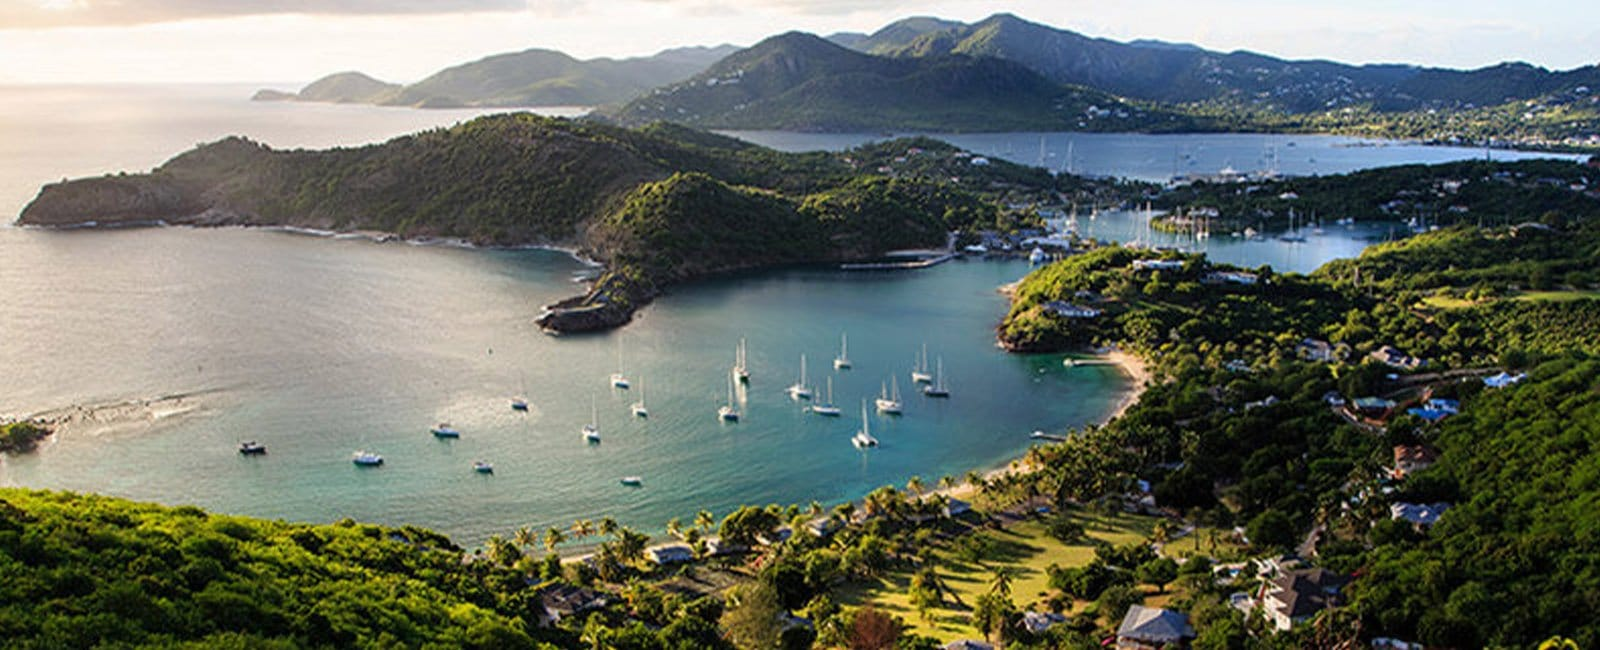 Antigua & Barbuda has no taxes on worldwide income, capital gains, dividends, gift, wealth and inheritance.